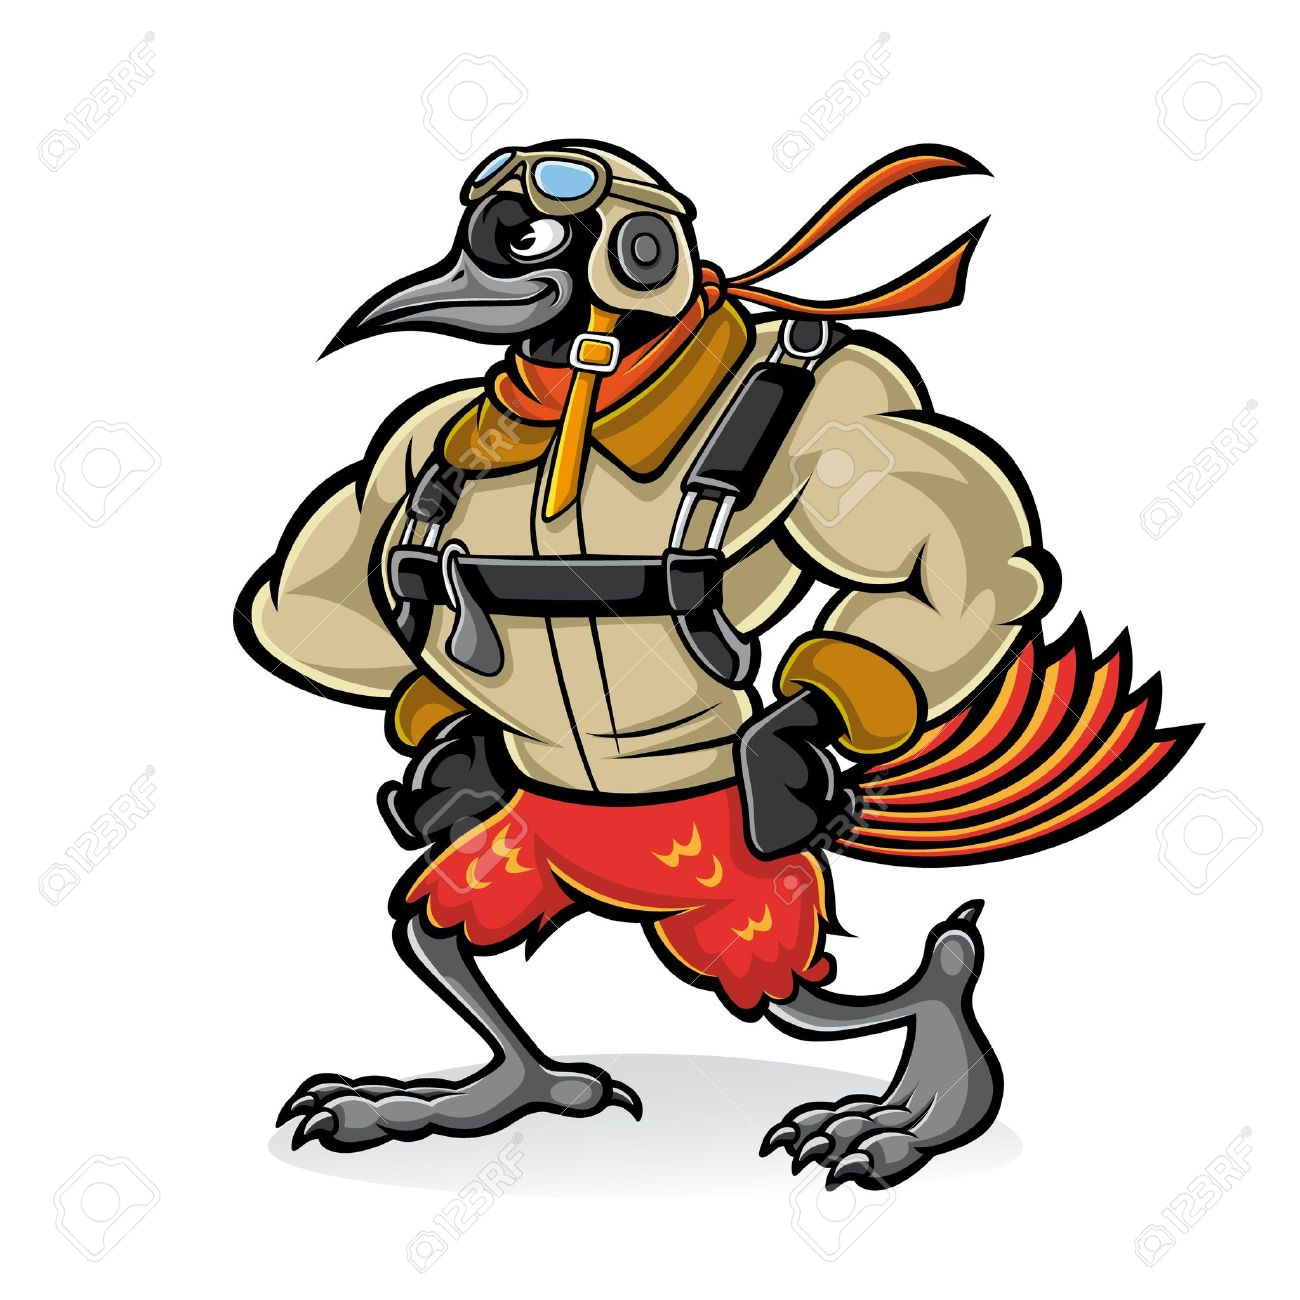 Cartoon oriole bird gallant aviator who was hands on her hips with confidence and wear uniforms and sunglasses aviator Stock Vector - 17953993